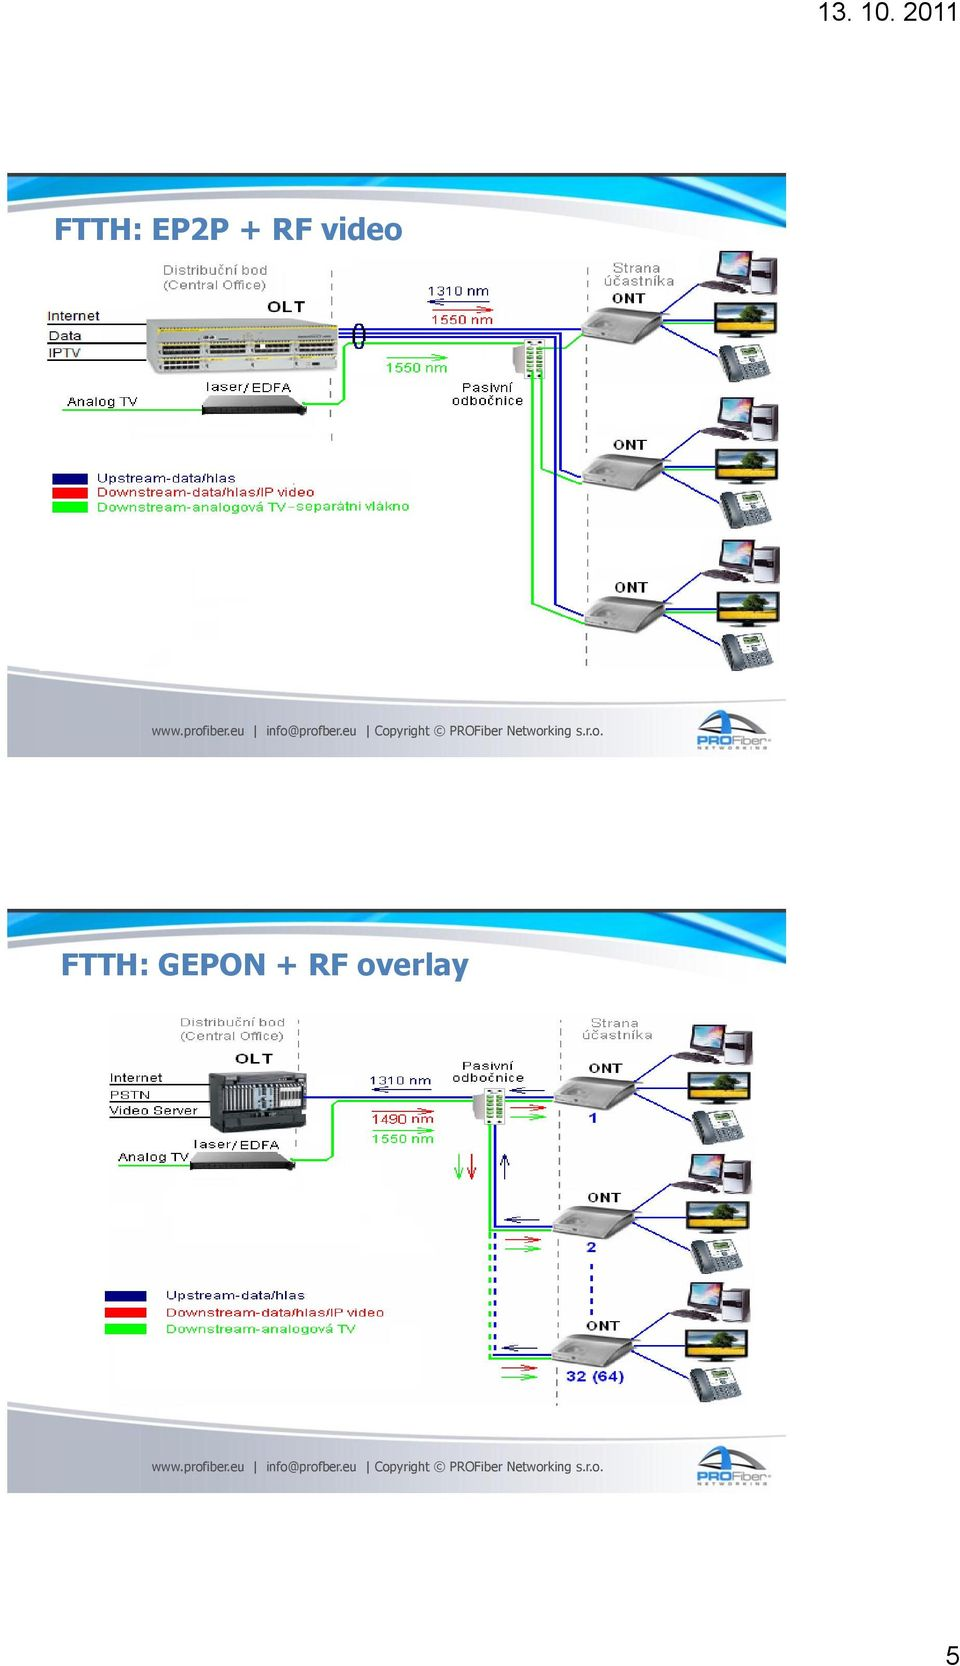 FTTH: GEPON